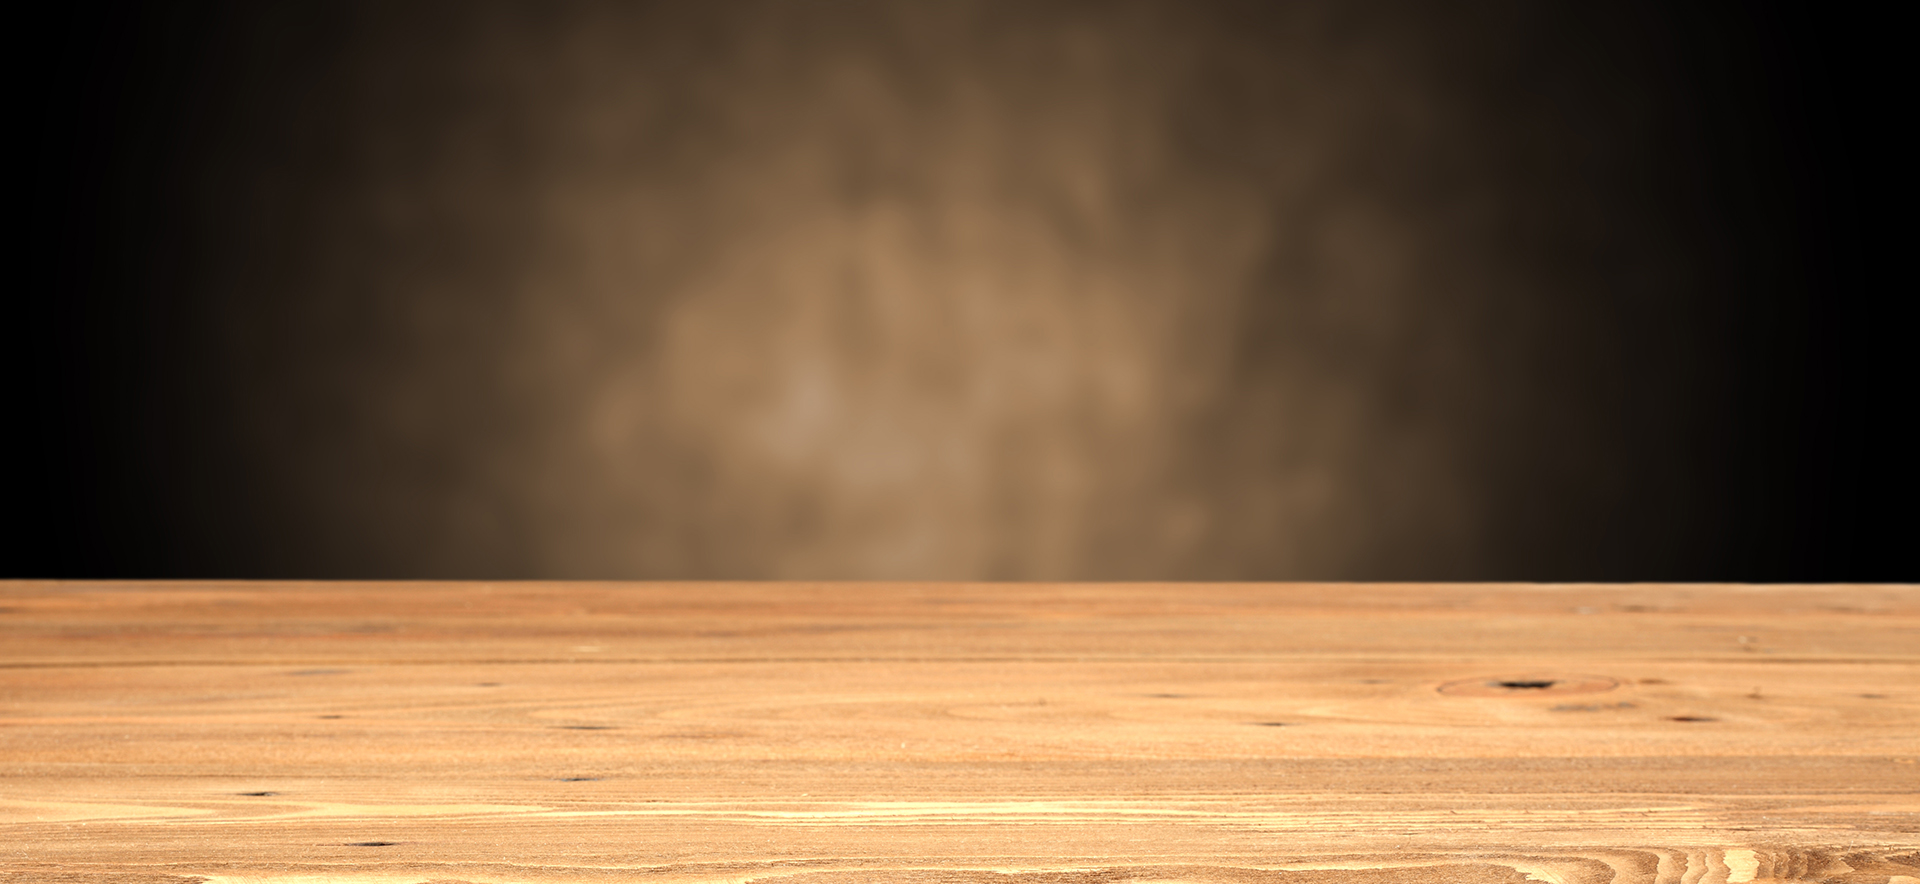 textura painel superf u00edcie material background brown